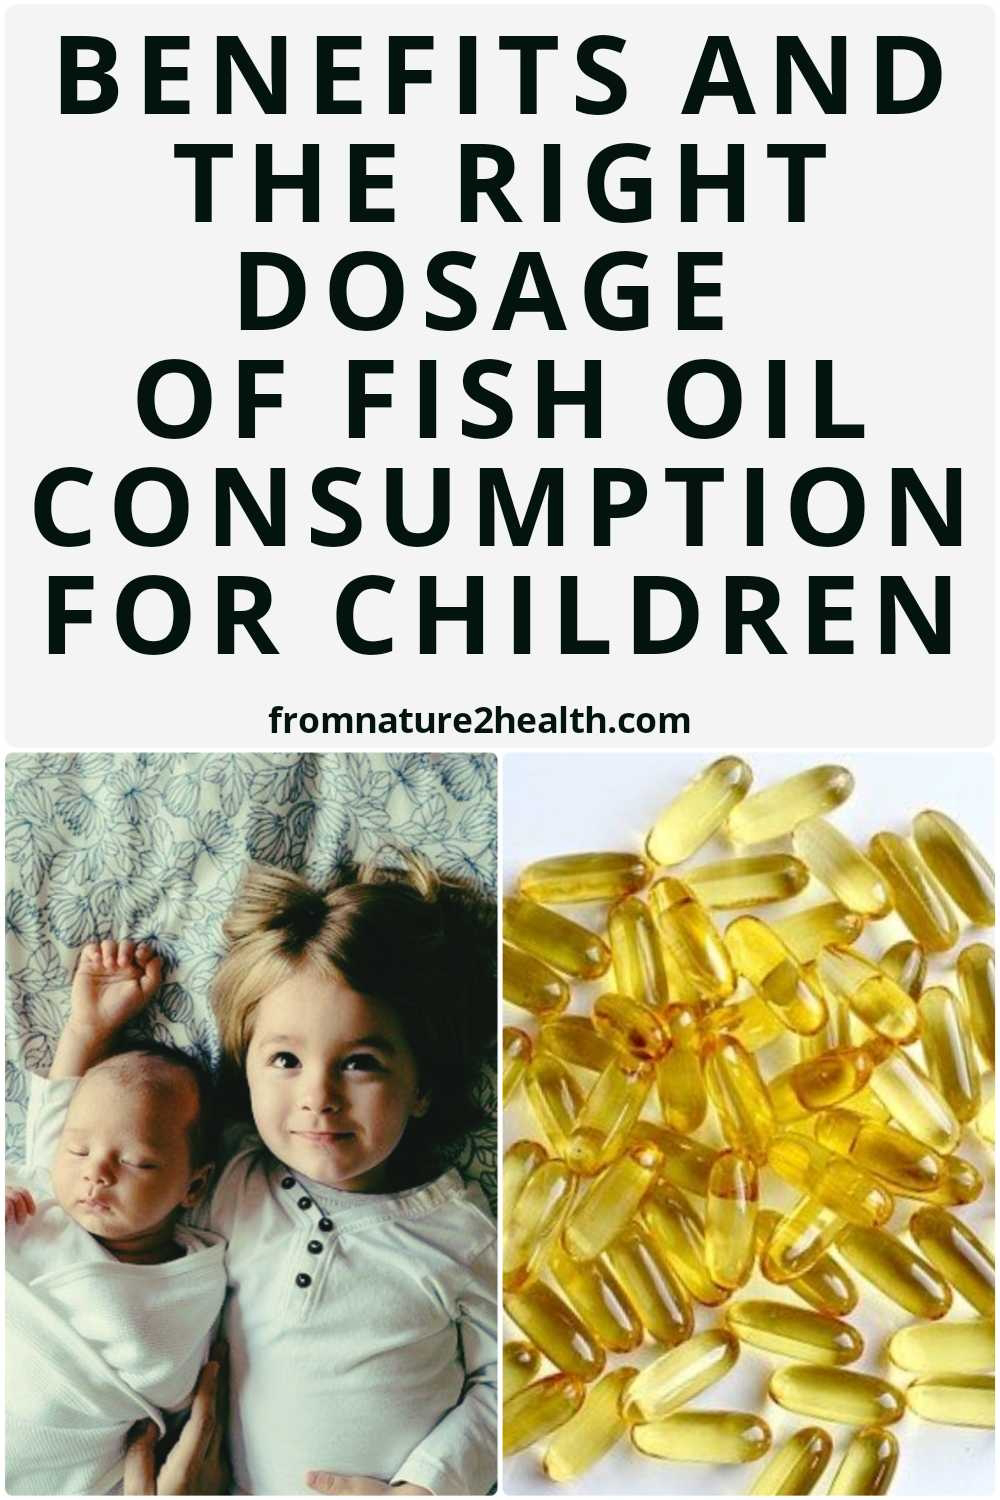 Benefits and the Right Dosage of Fish Oil Consumption for Children